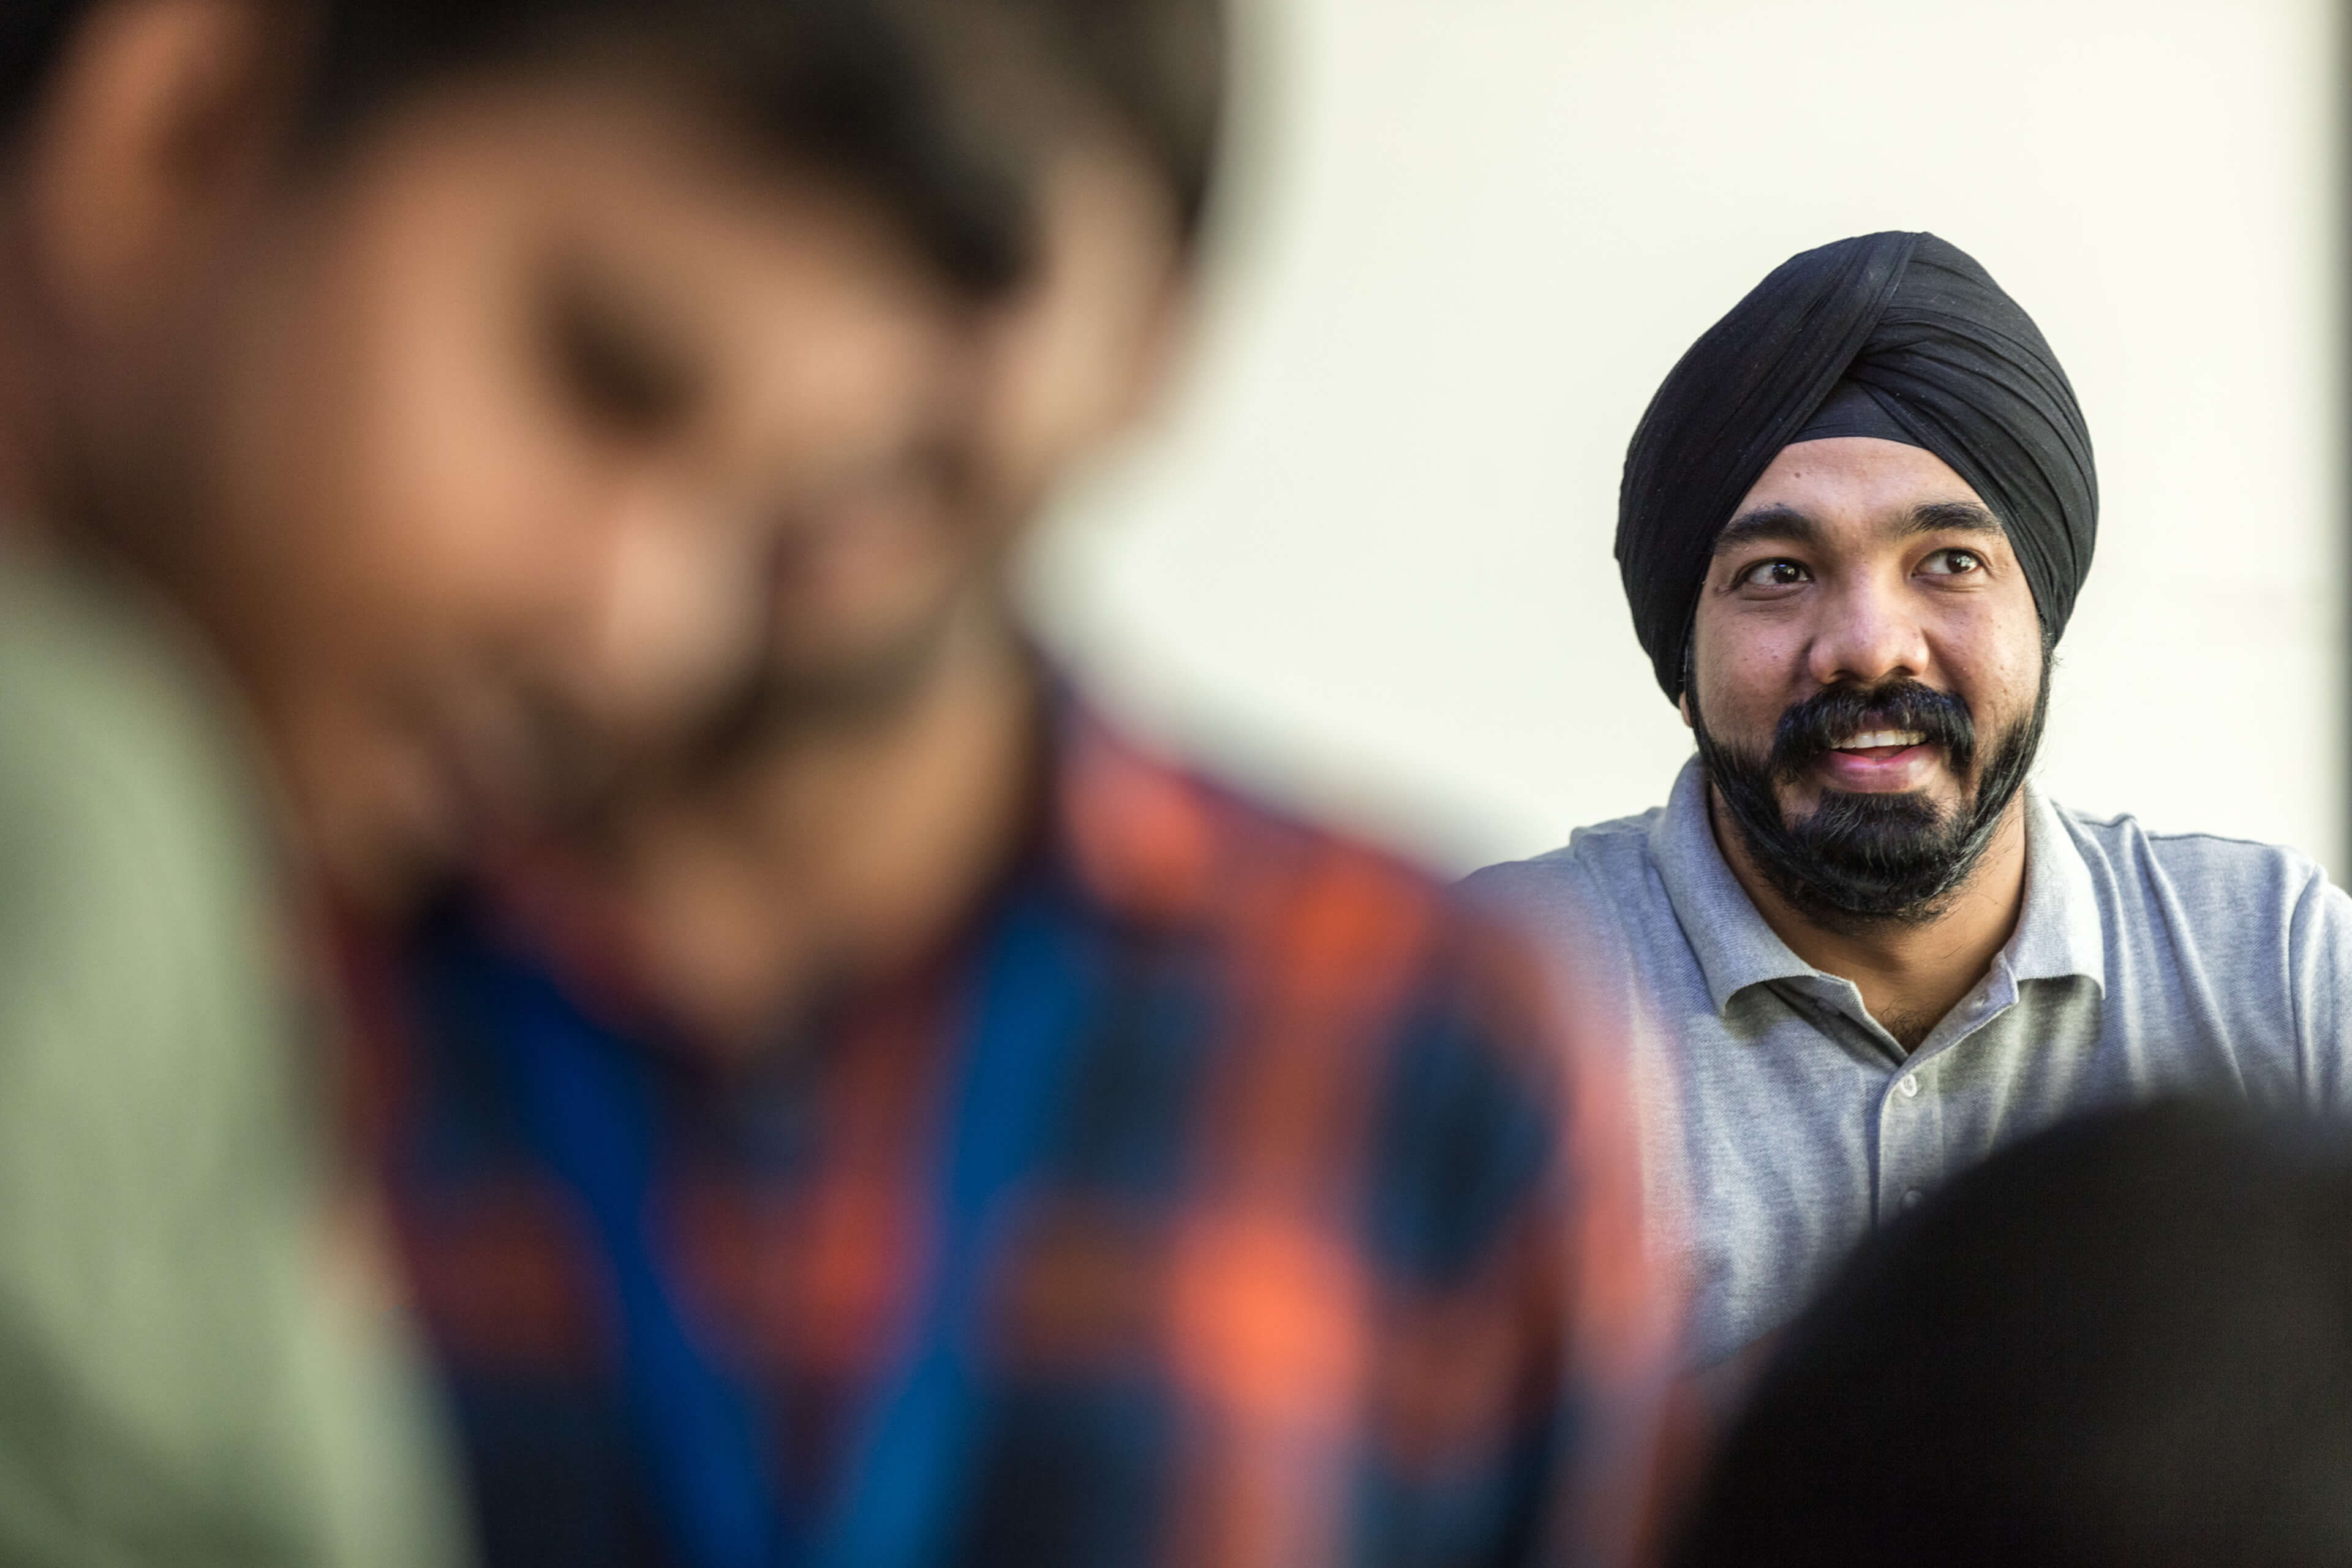 Amanpreet Bajaj, EY alumnus and country manager of Airbnb India